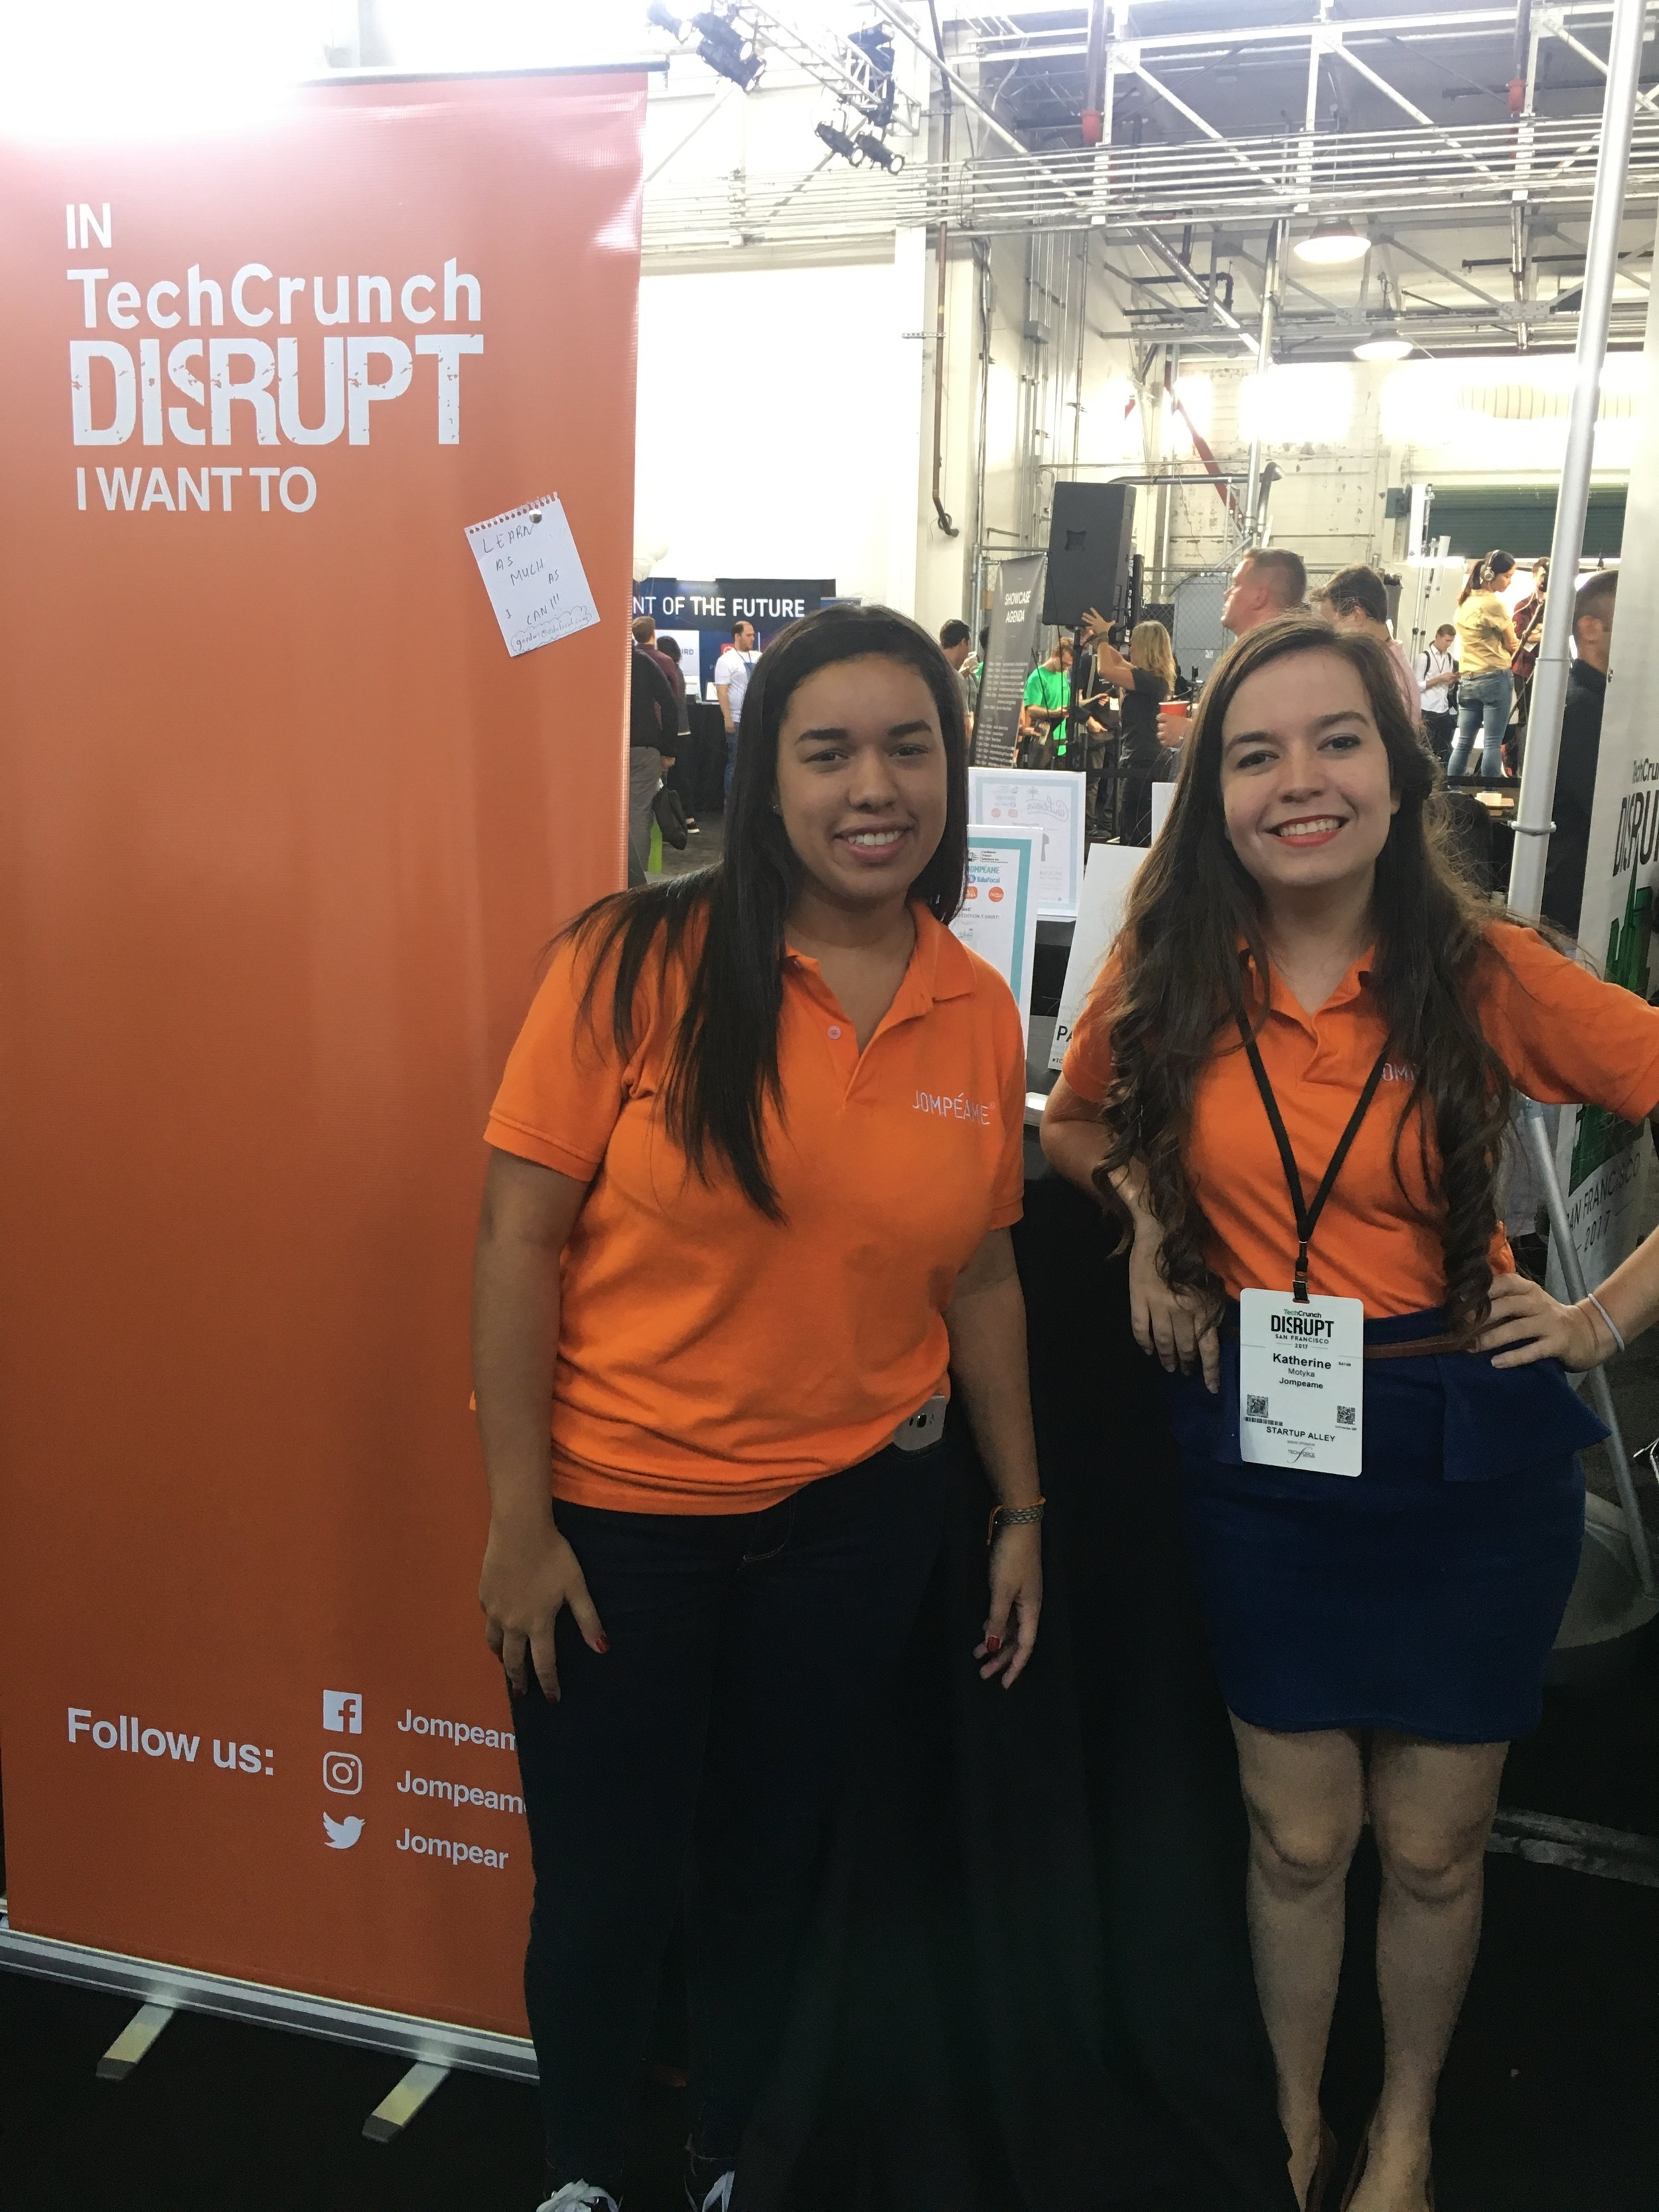 Lucitania Castillo and Katherine Motyka display their orange appeal of Jompéame.